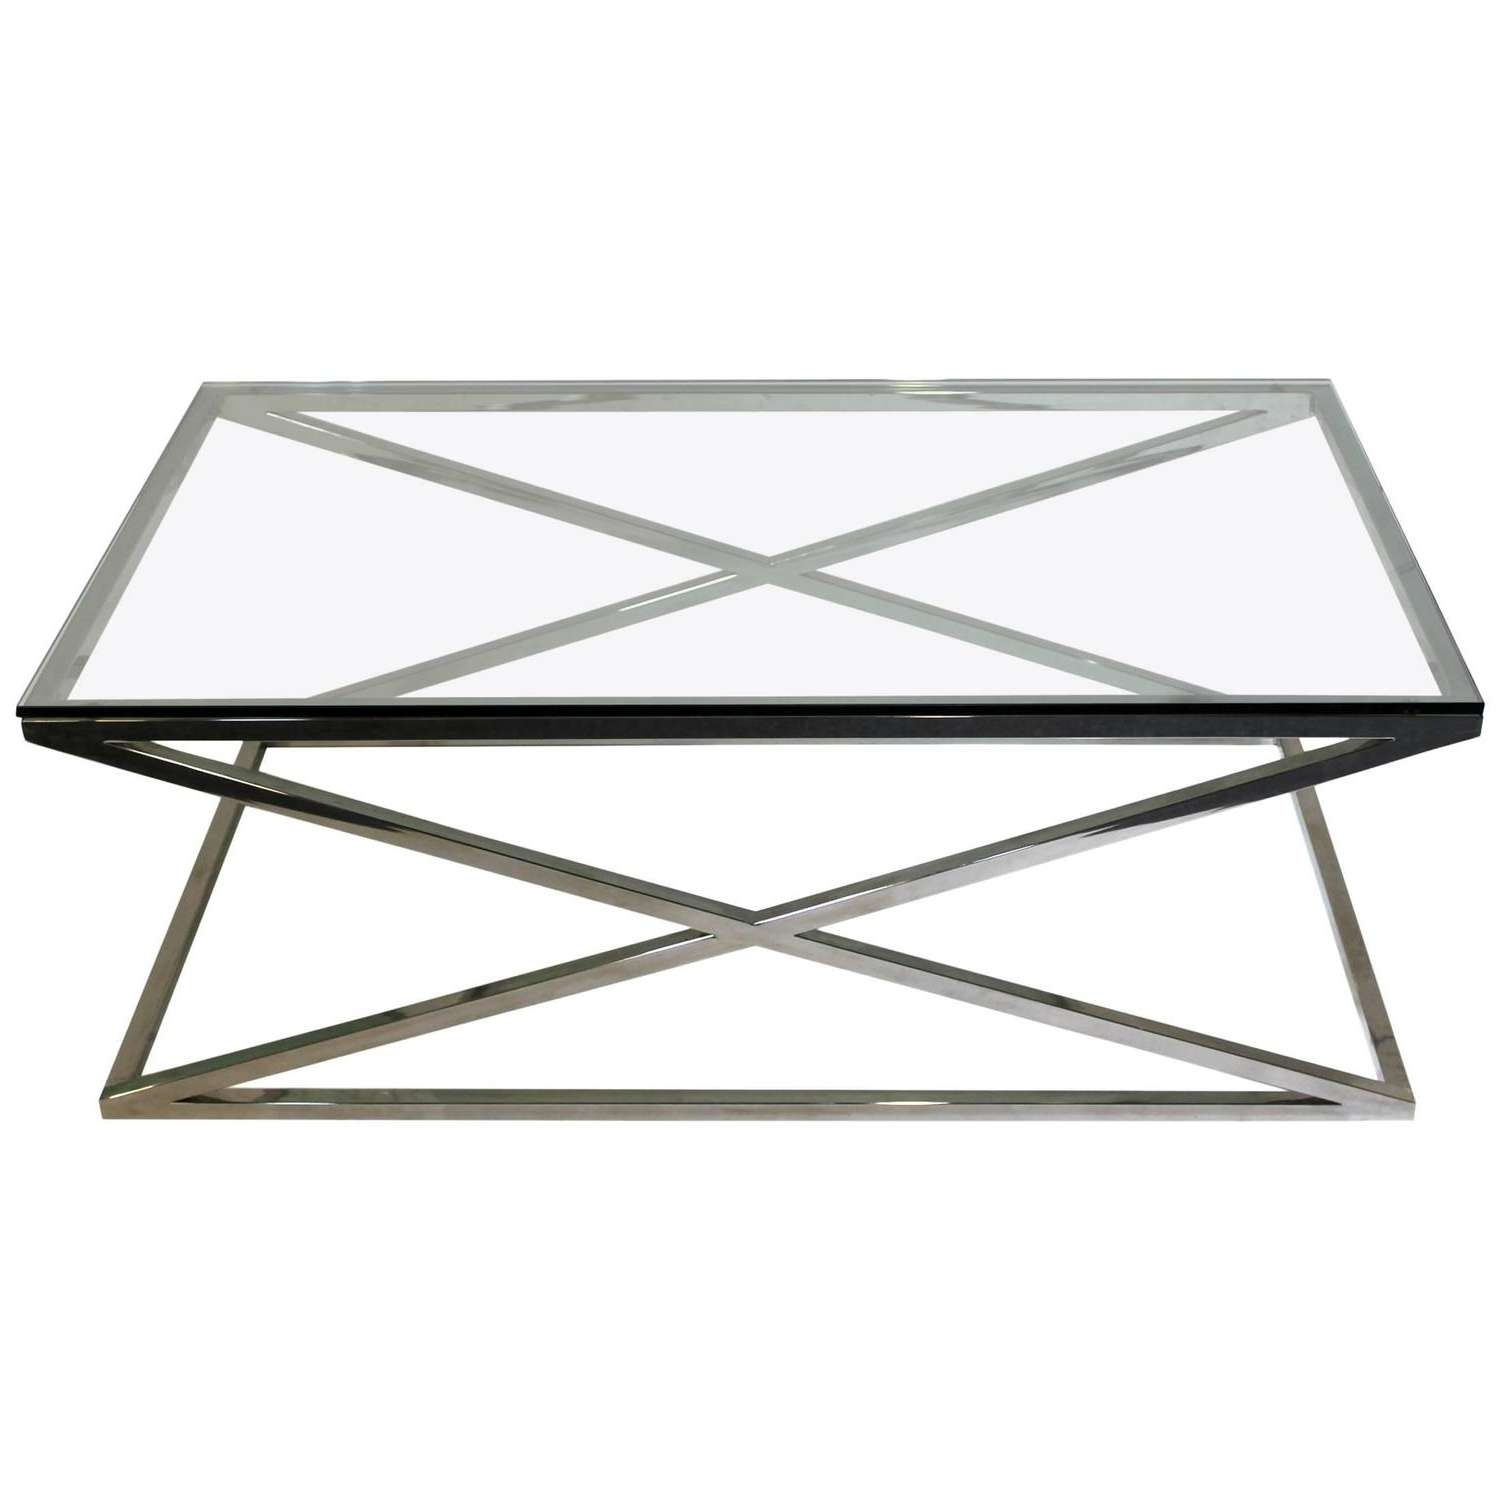 Mid Century Modern Rectangular Glass Coffee Table Chrome X Base At Pertaining To Well Liked Chrome And Glass Coffee Tables (View 14 of 20)